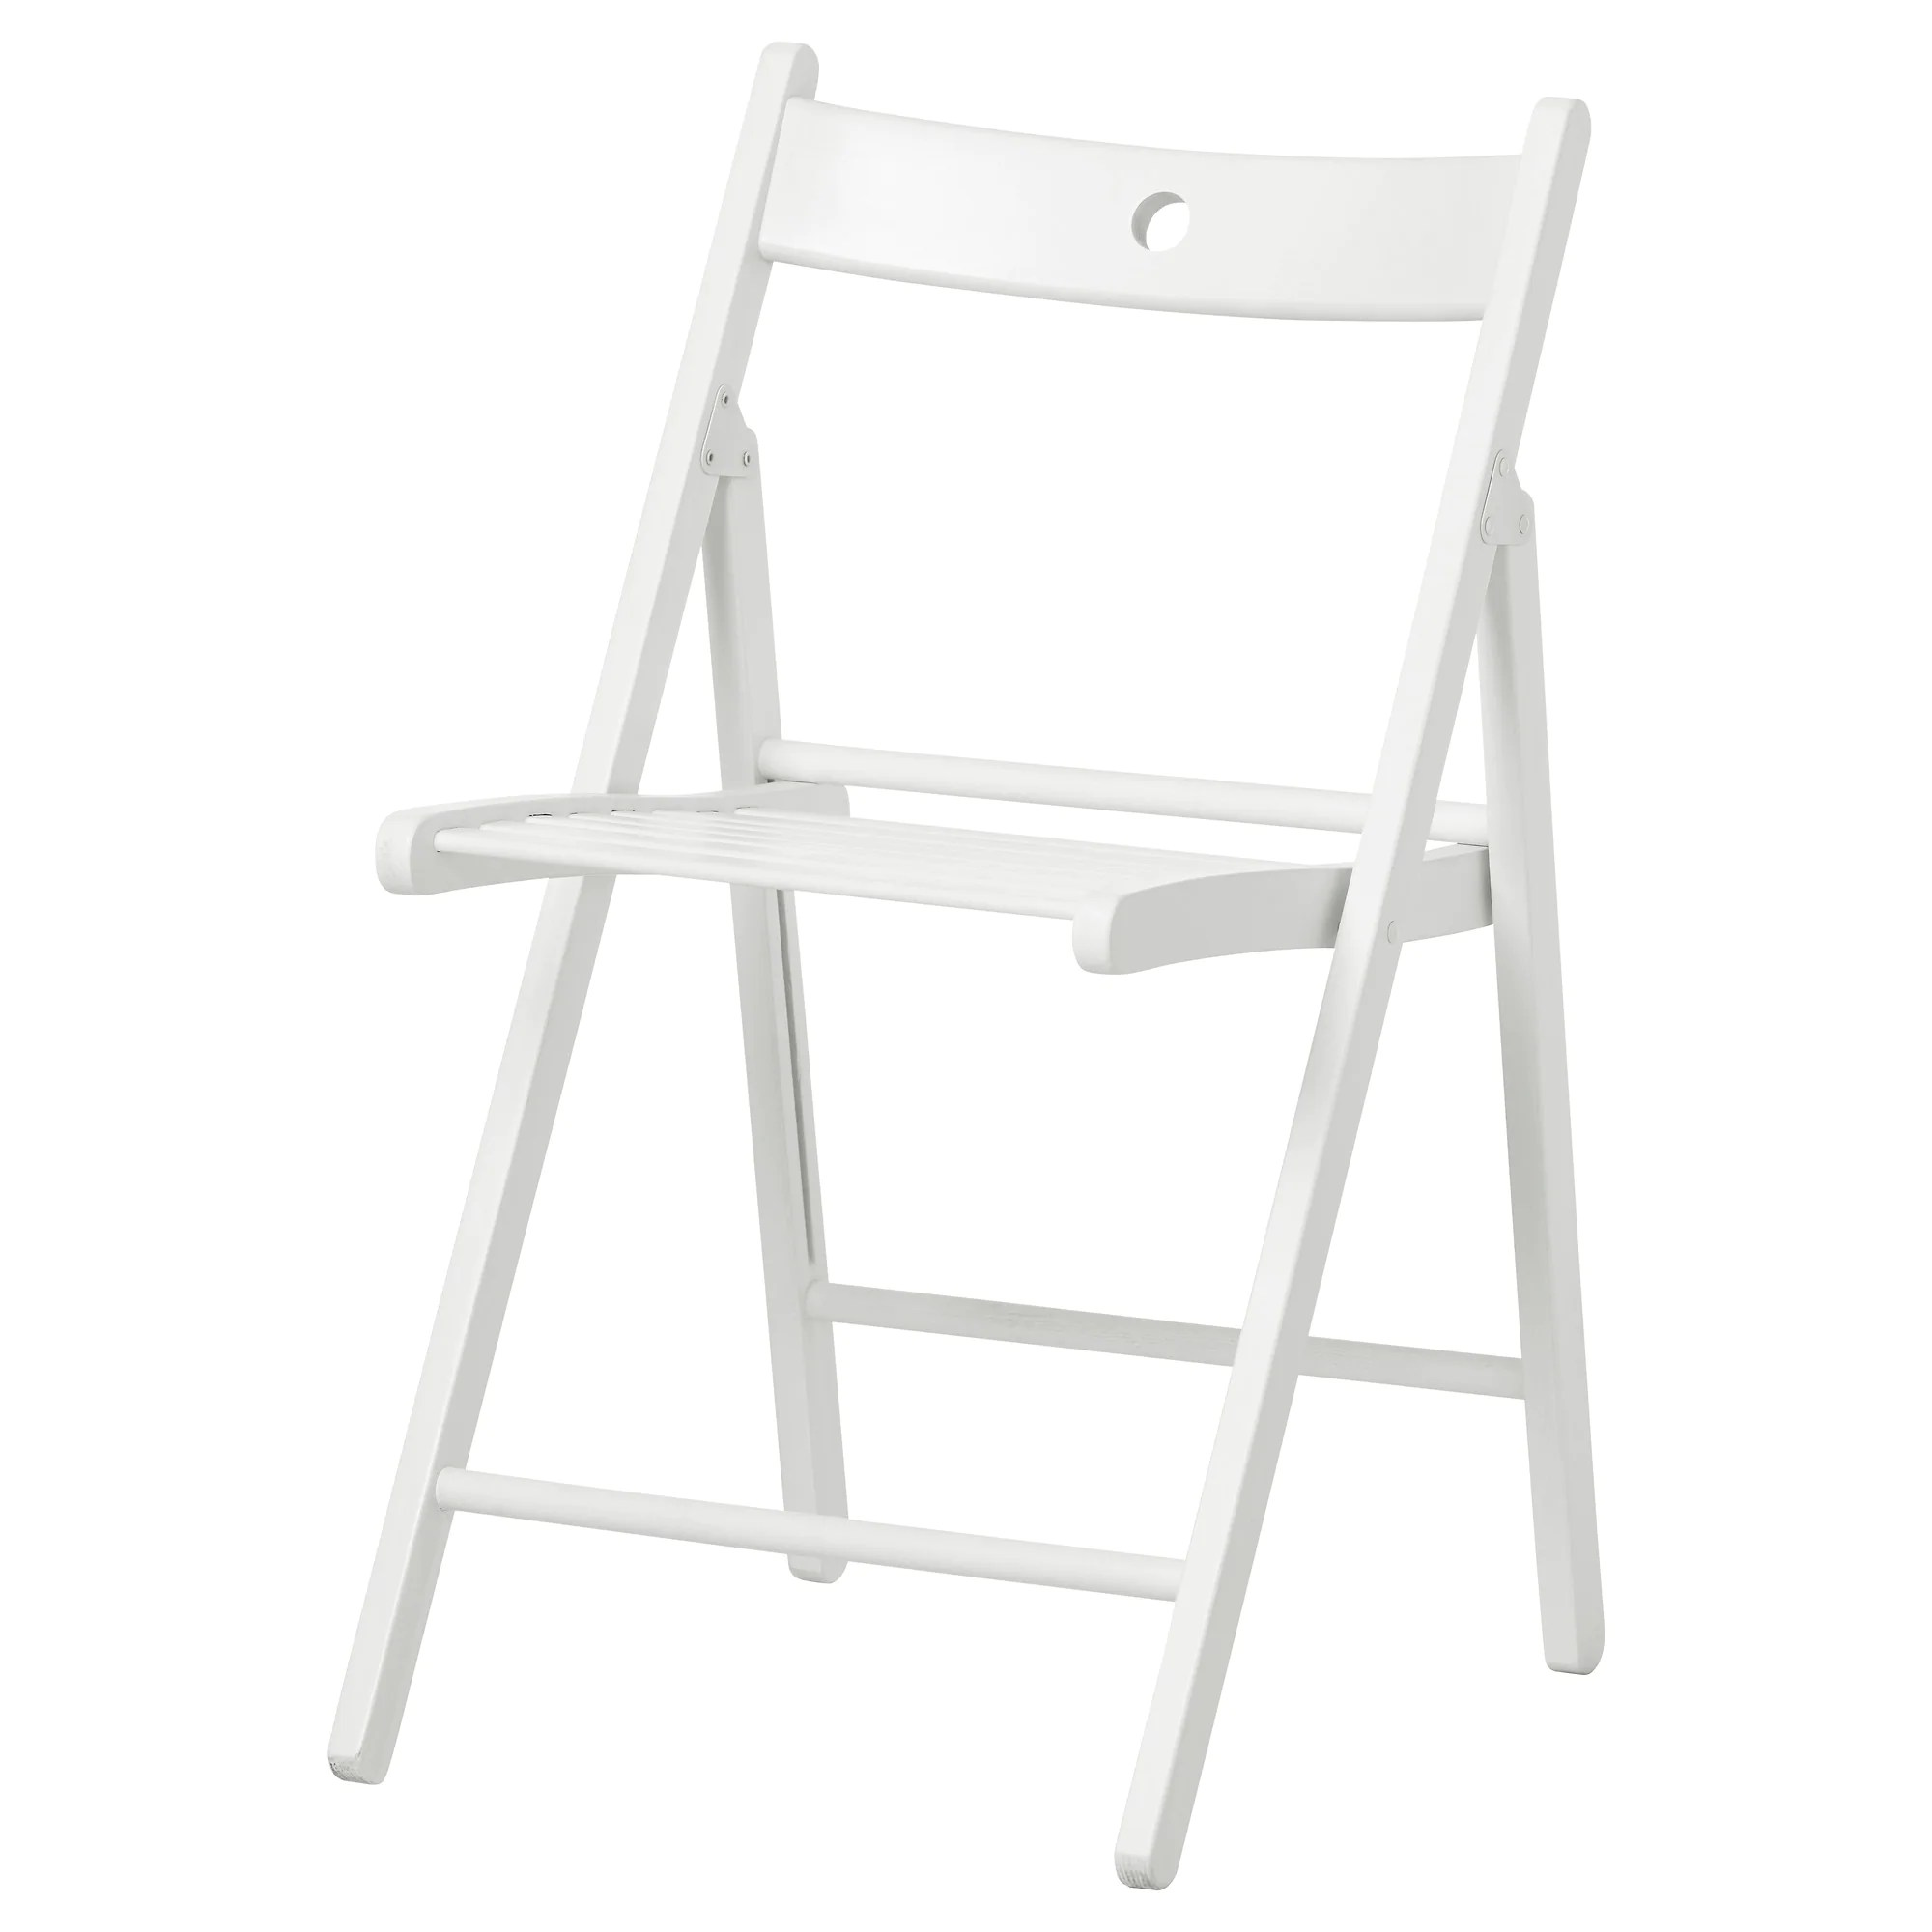 white folding chairs wicker indoor dining table and terje chair ikea feedback